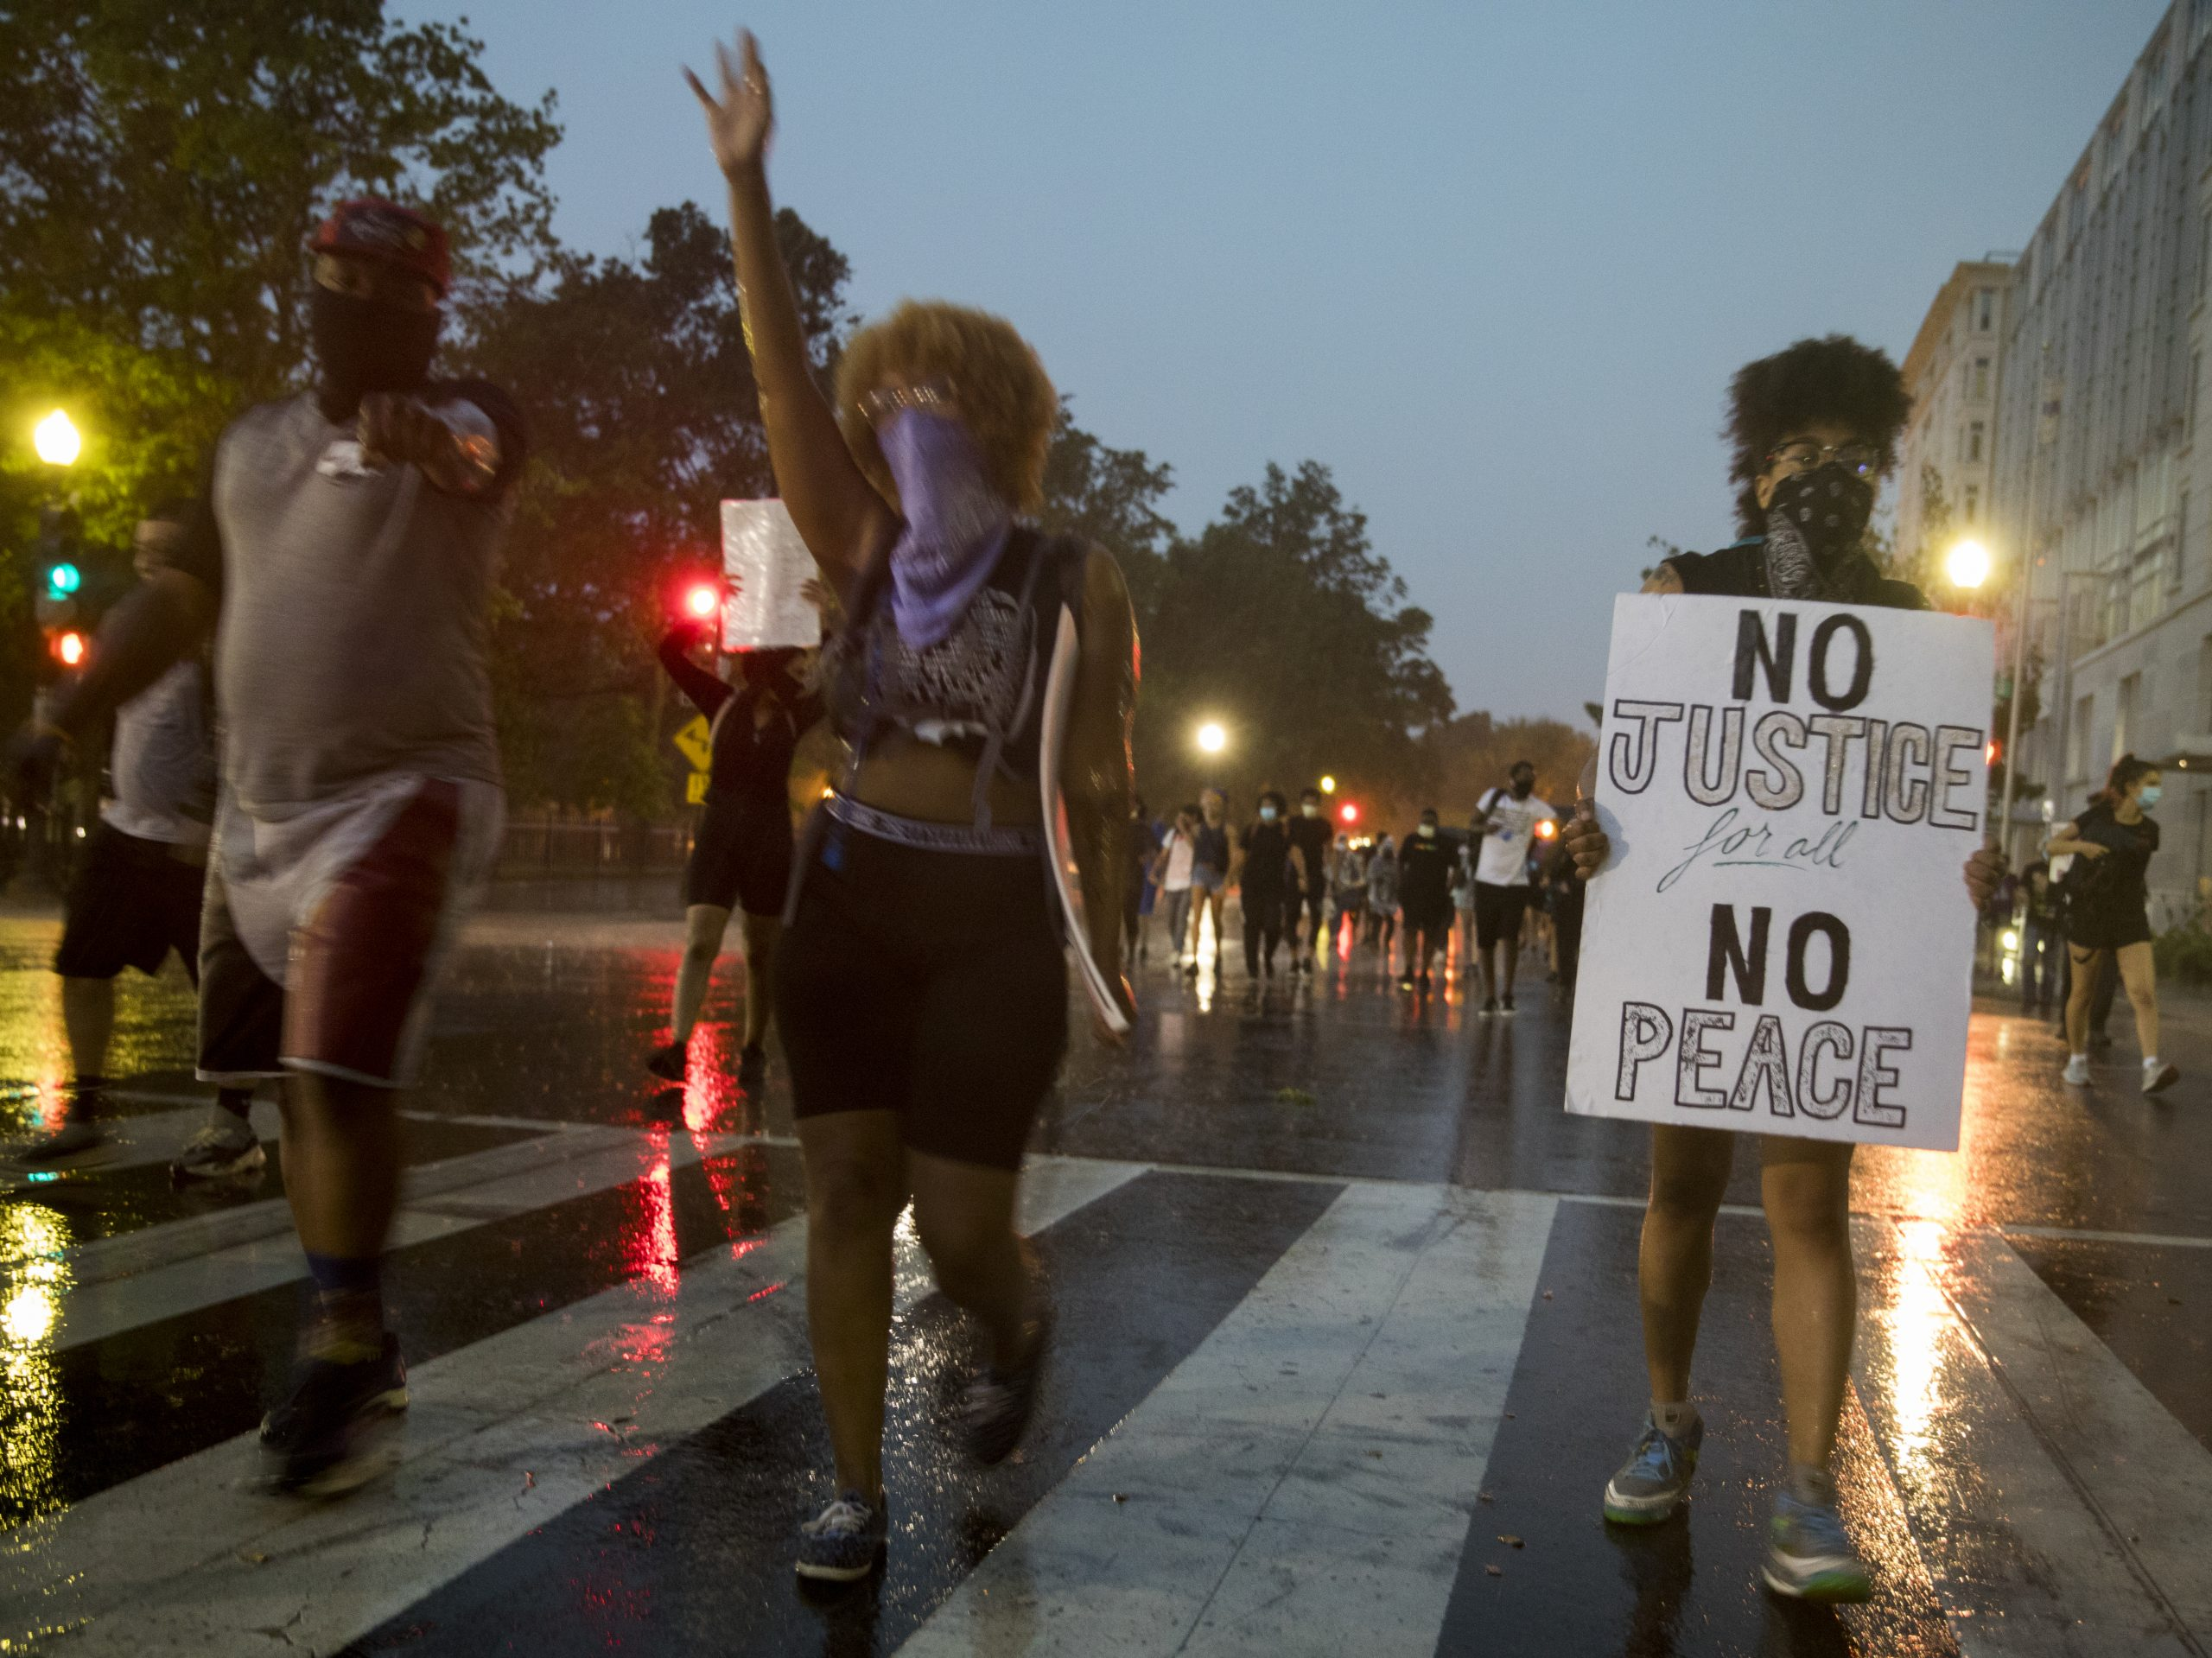 Rain did not dampen the determination of protesters walking on New York Avenue in  Washington, D.C., on Thursday.